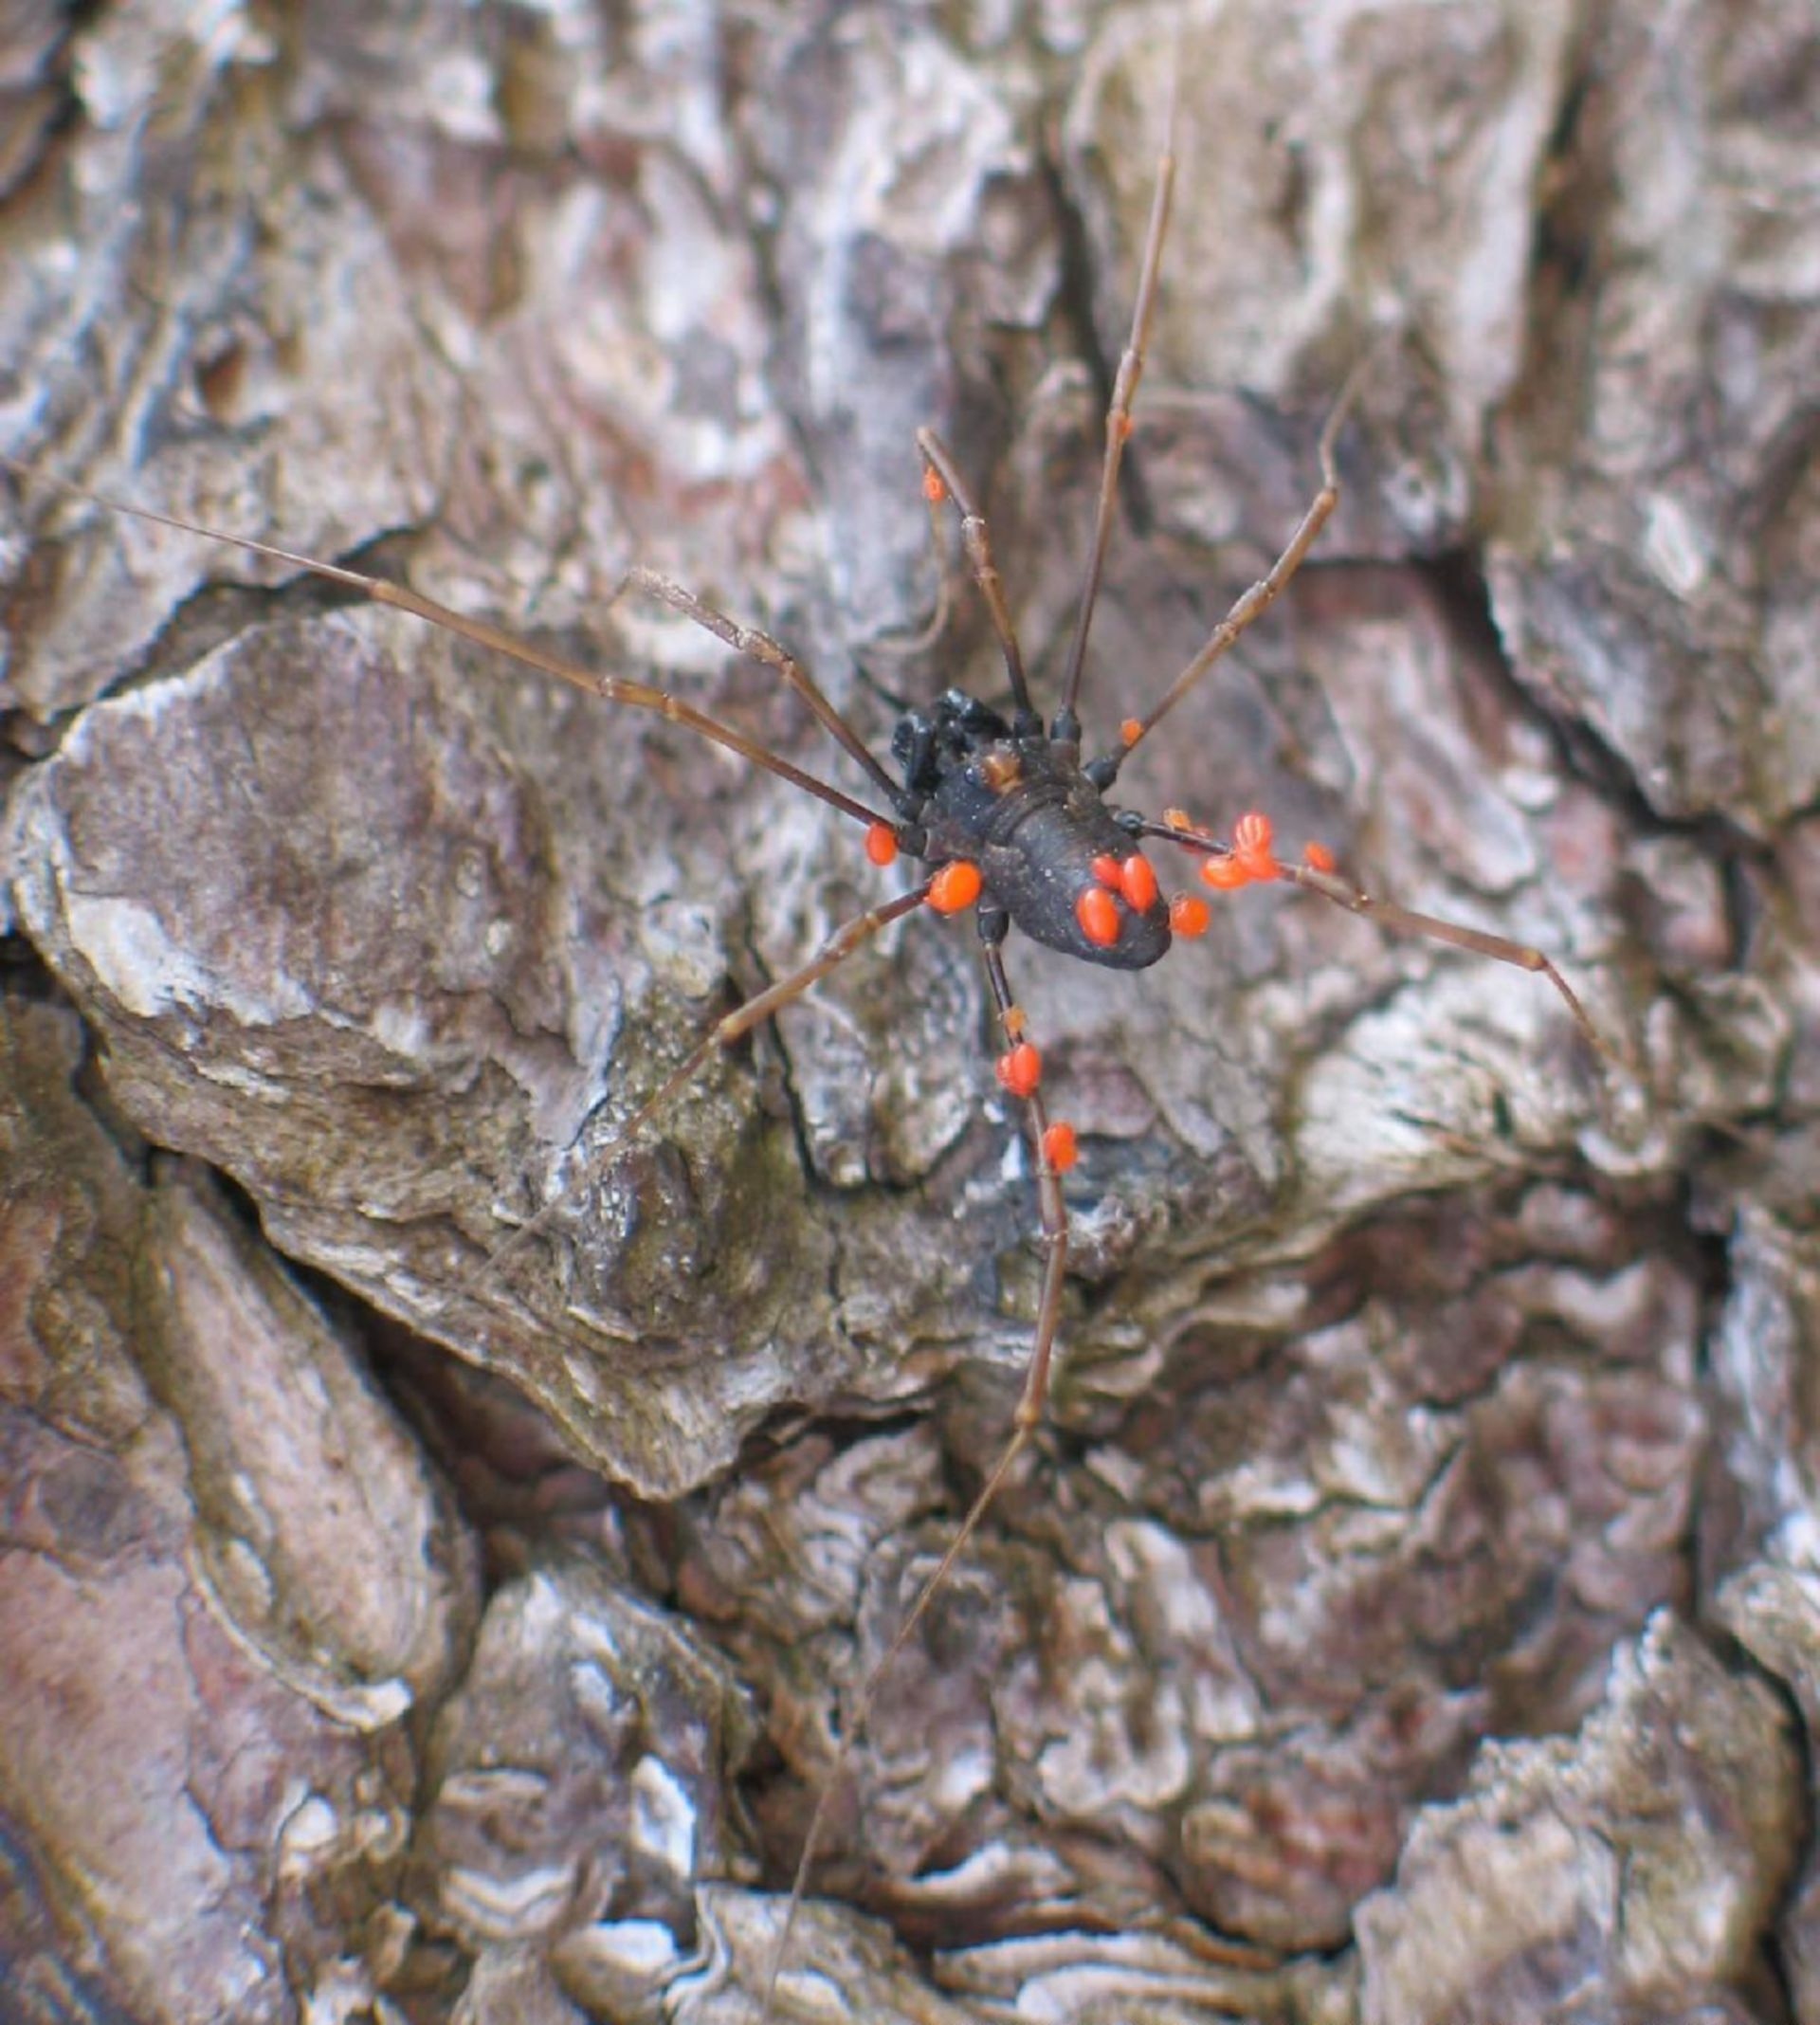 Harvestman suffering from mite pest